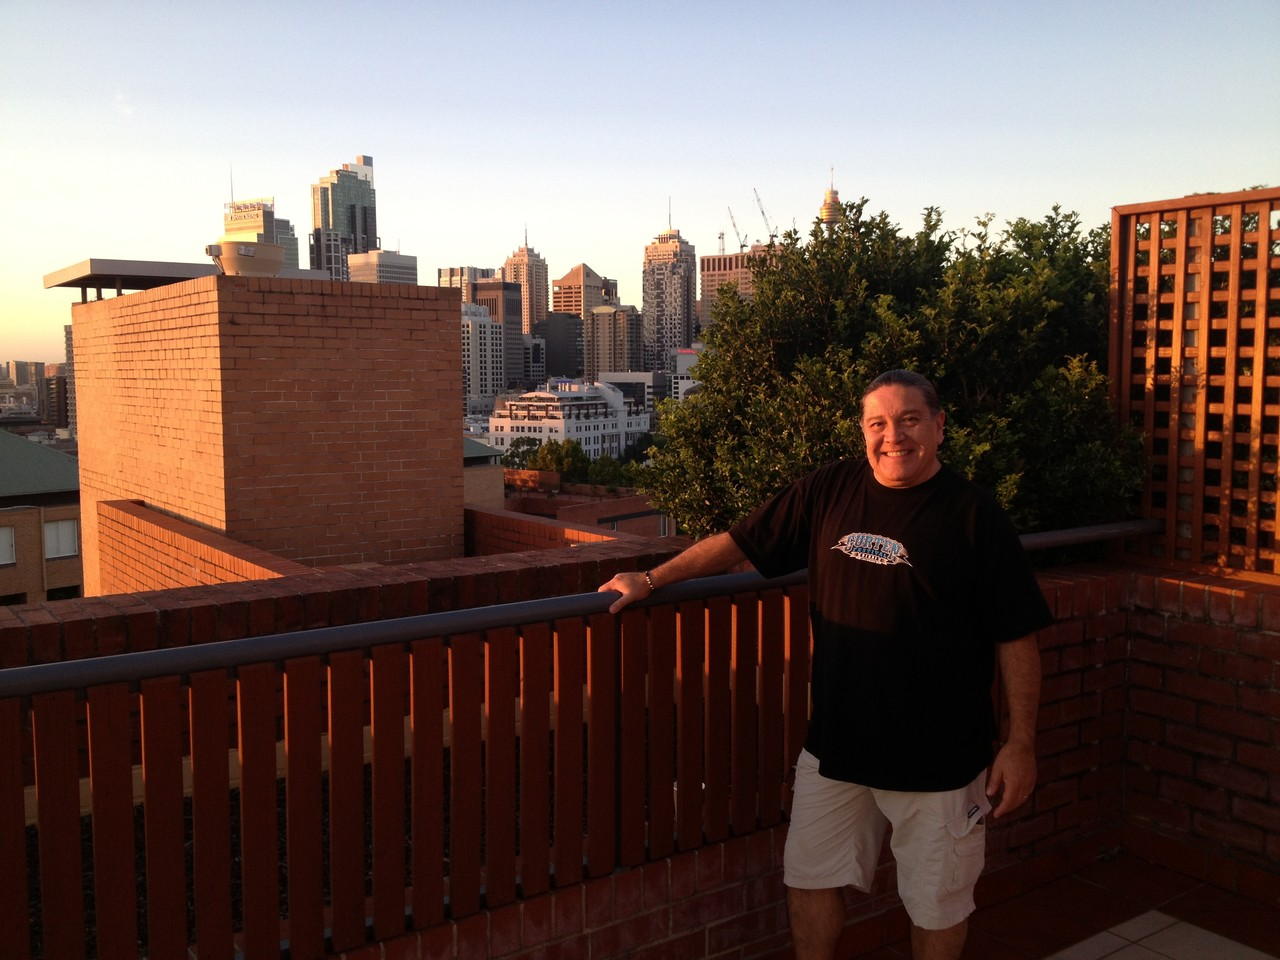 Front of House engineer David Marchant chills out on the balcony as the sun goes down - great view of Sydney. — with David Marchant at Sydney Australia.